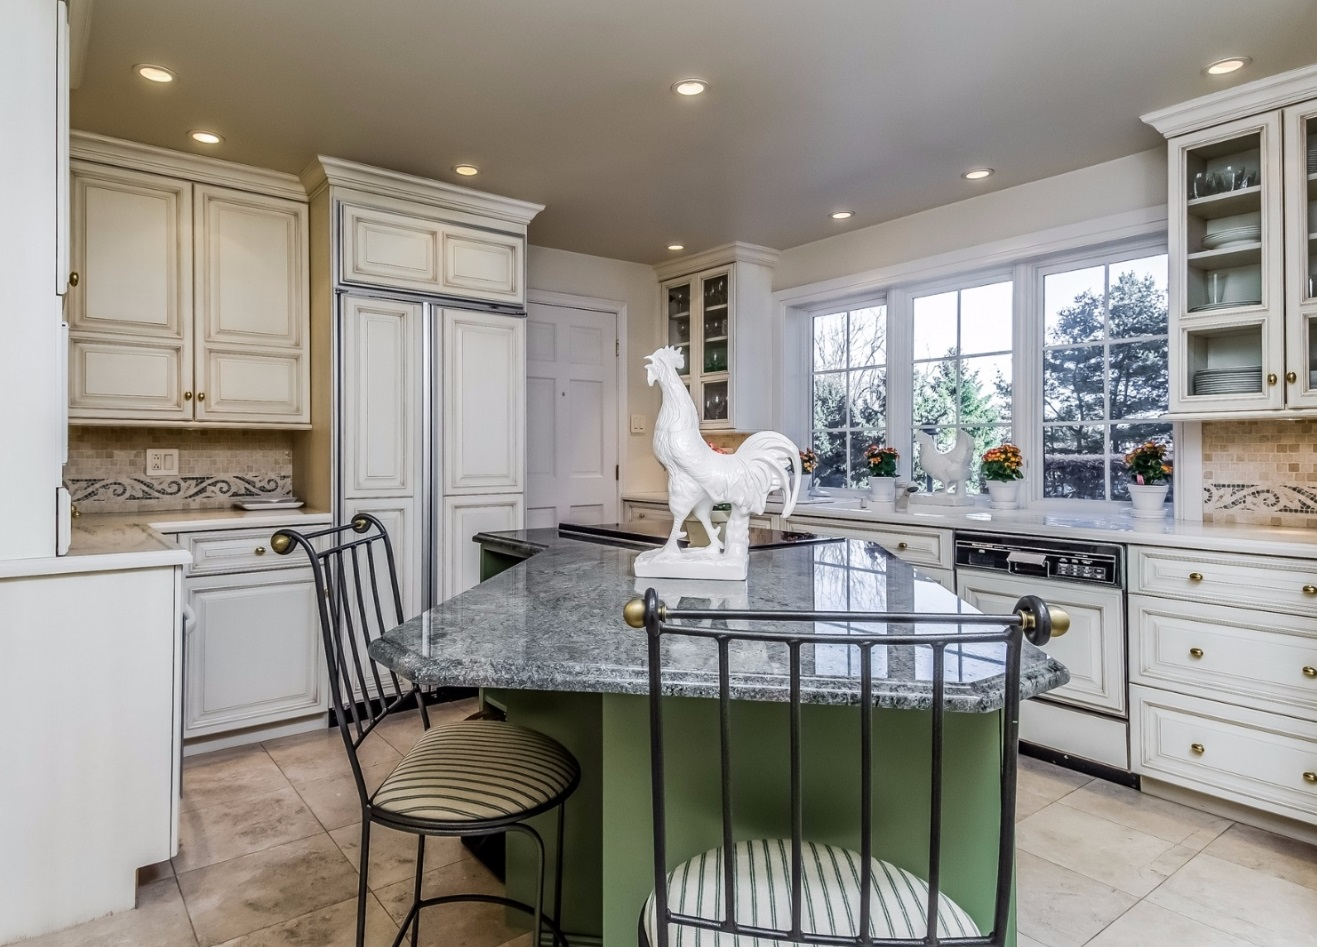 Elegant Country Kitchen New Hope PA Steve Walny REALTOR®